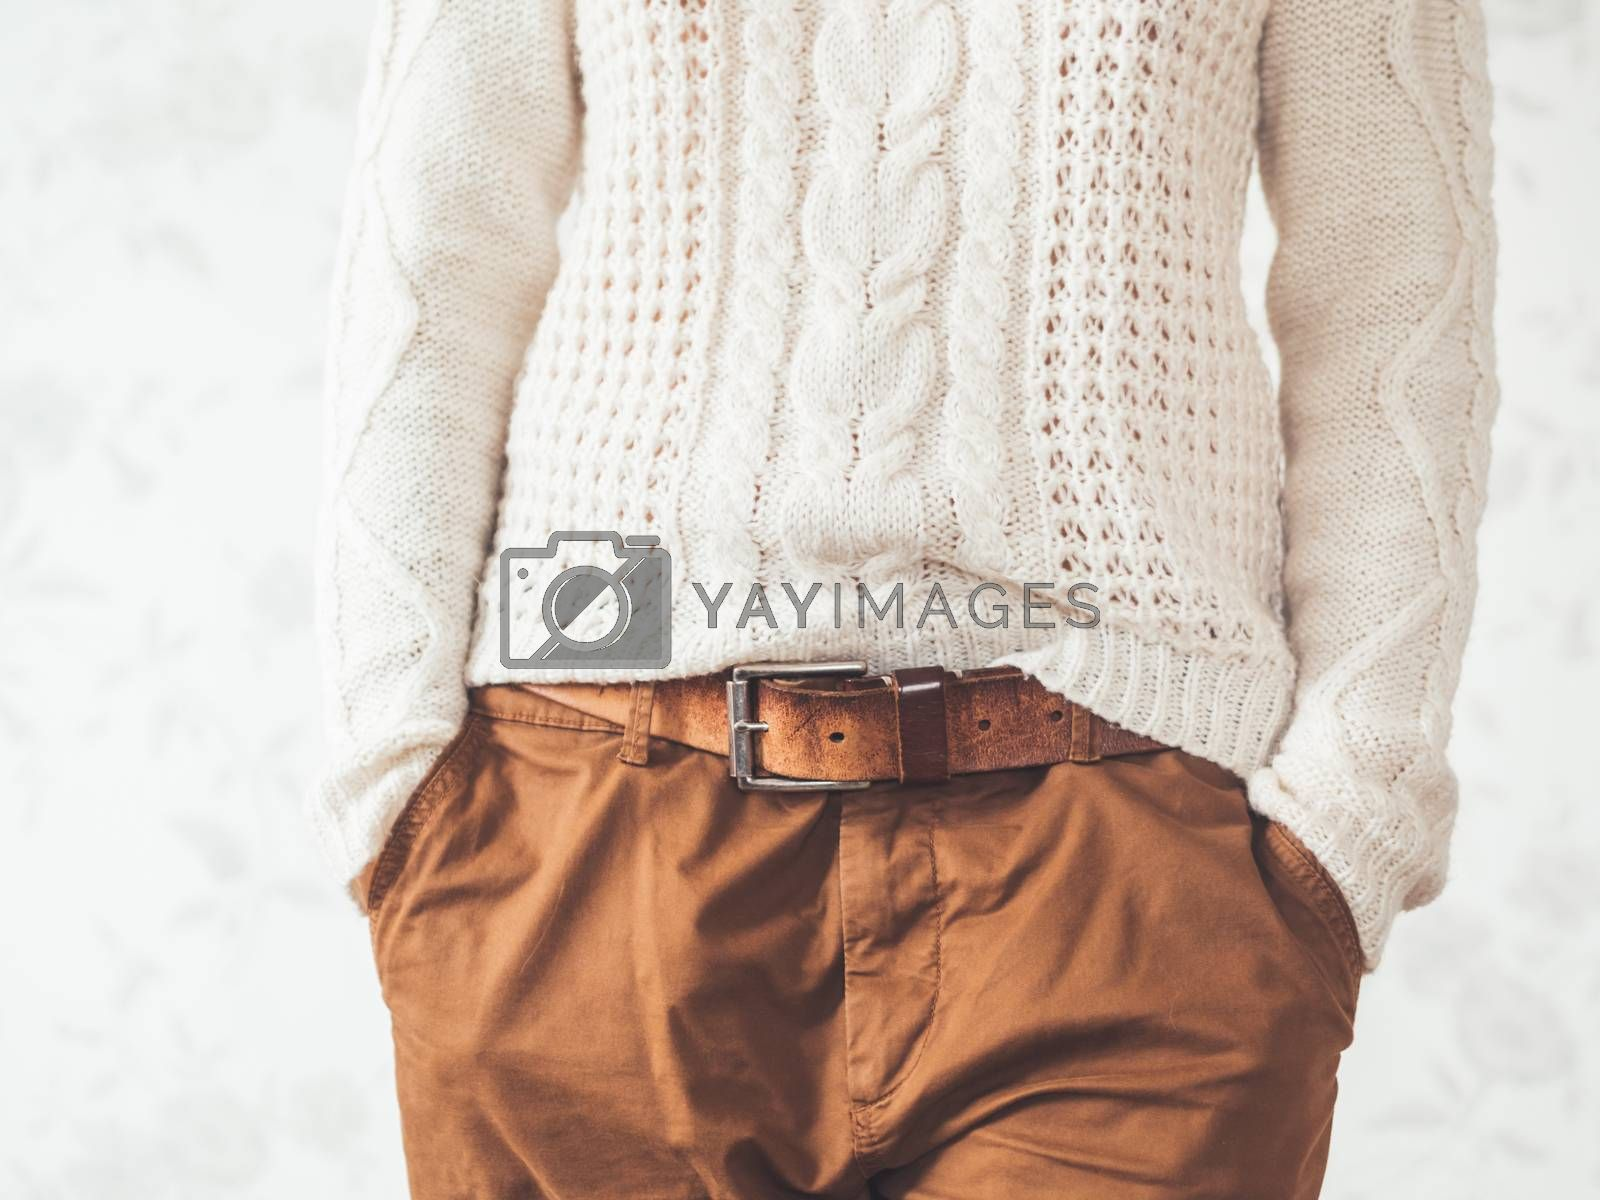 Royalty free image of Woman in cable-knit white sweater with Scandinavian pattern and brown chinos trousers with leather belt. Casual clothes for snuggle weather. Modern urban fashion. by aksenovko